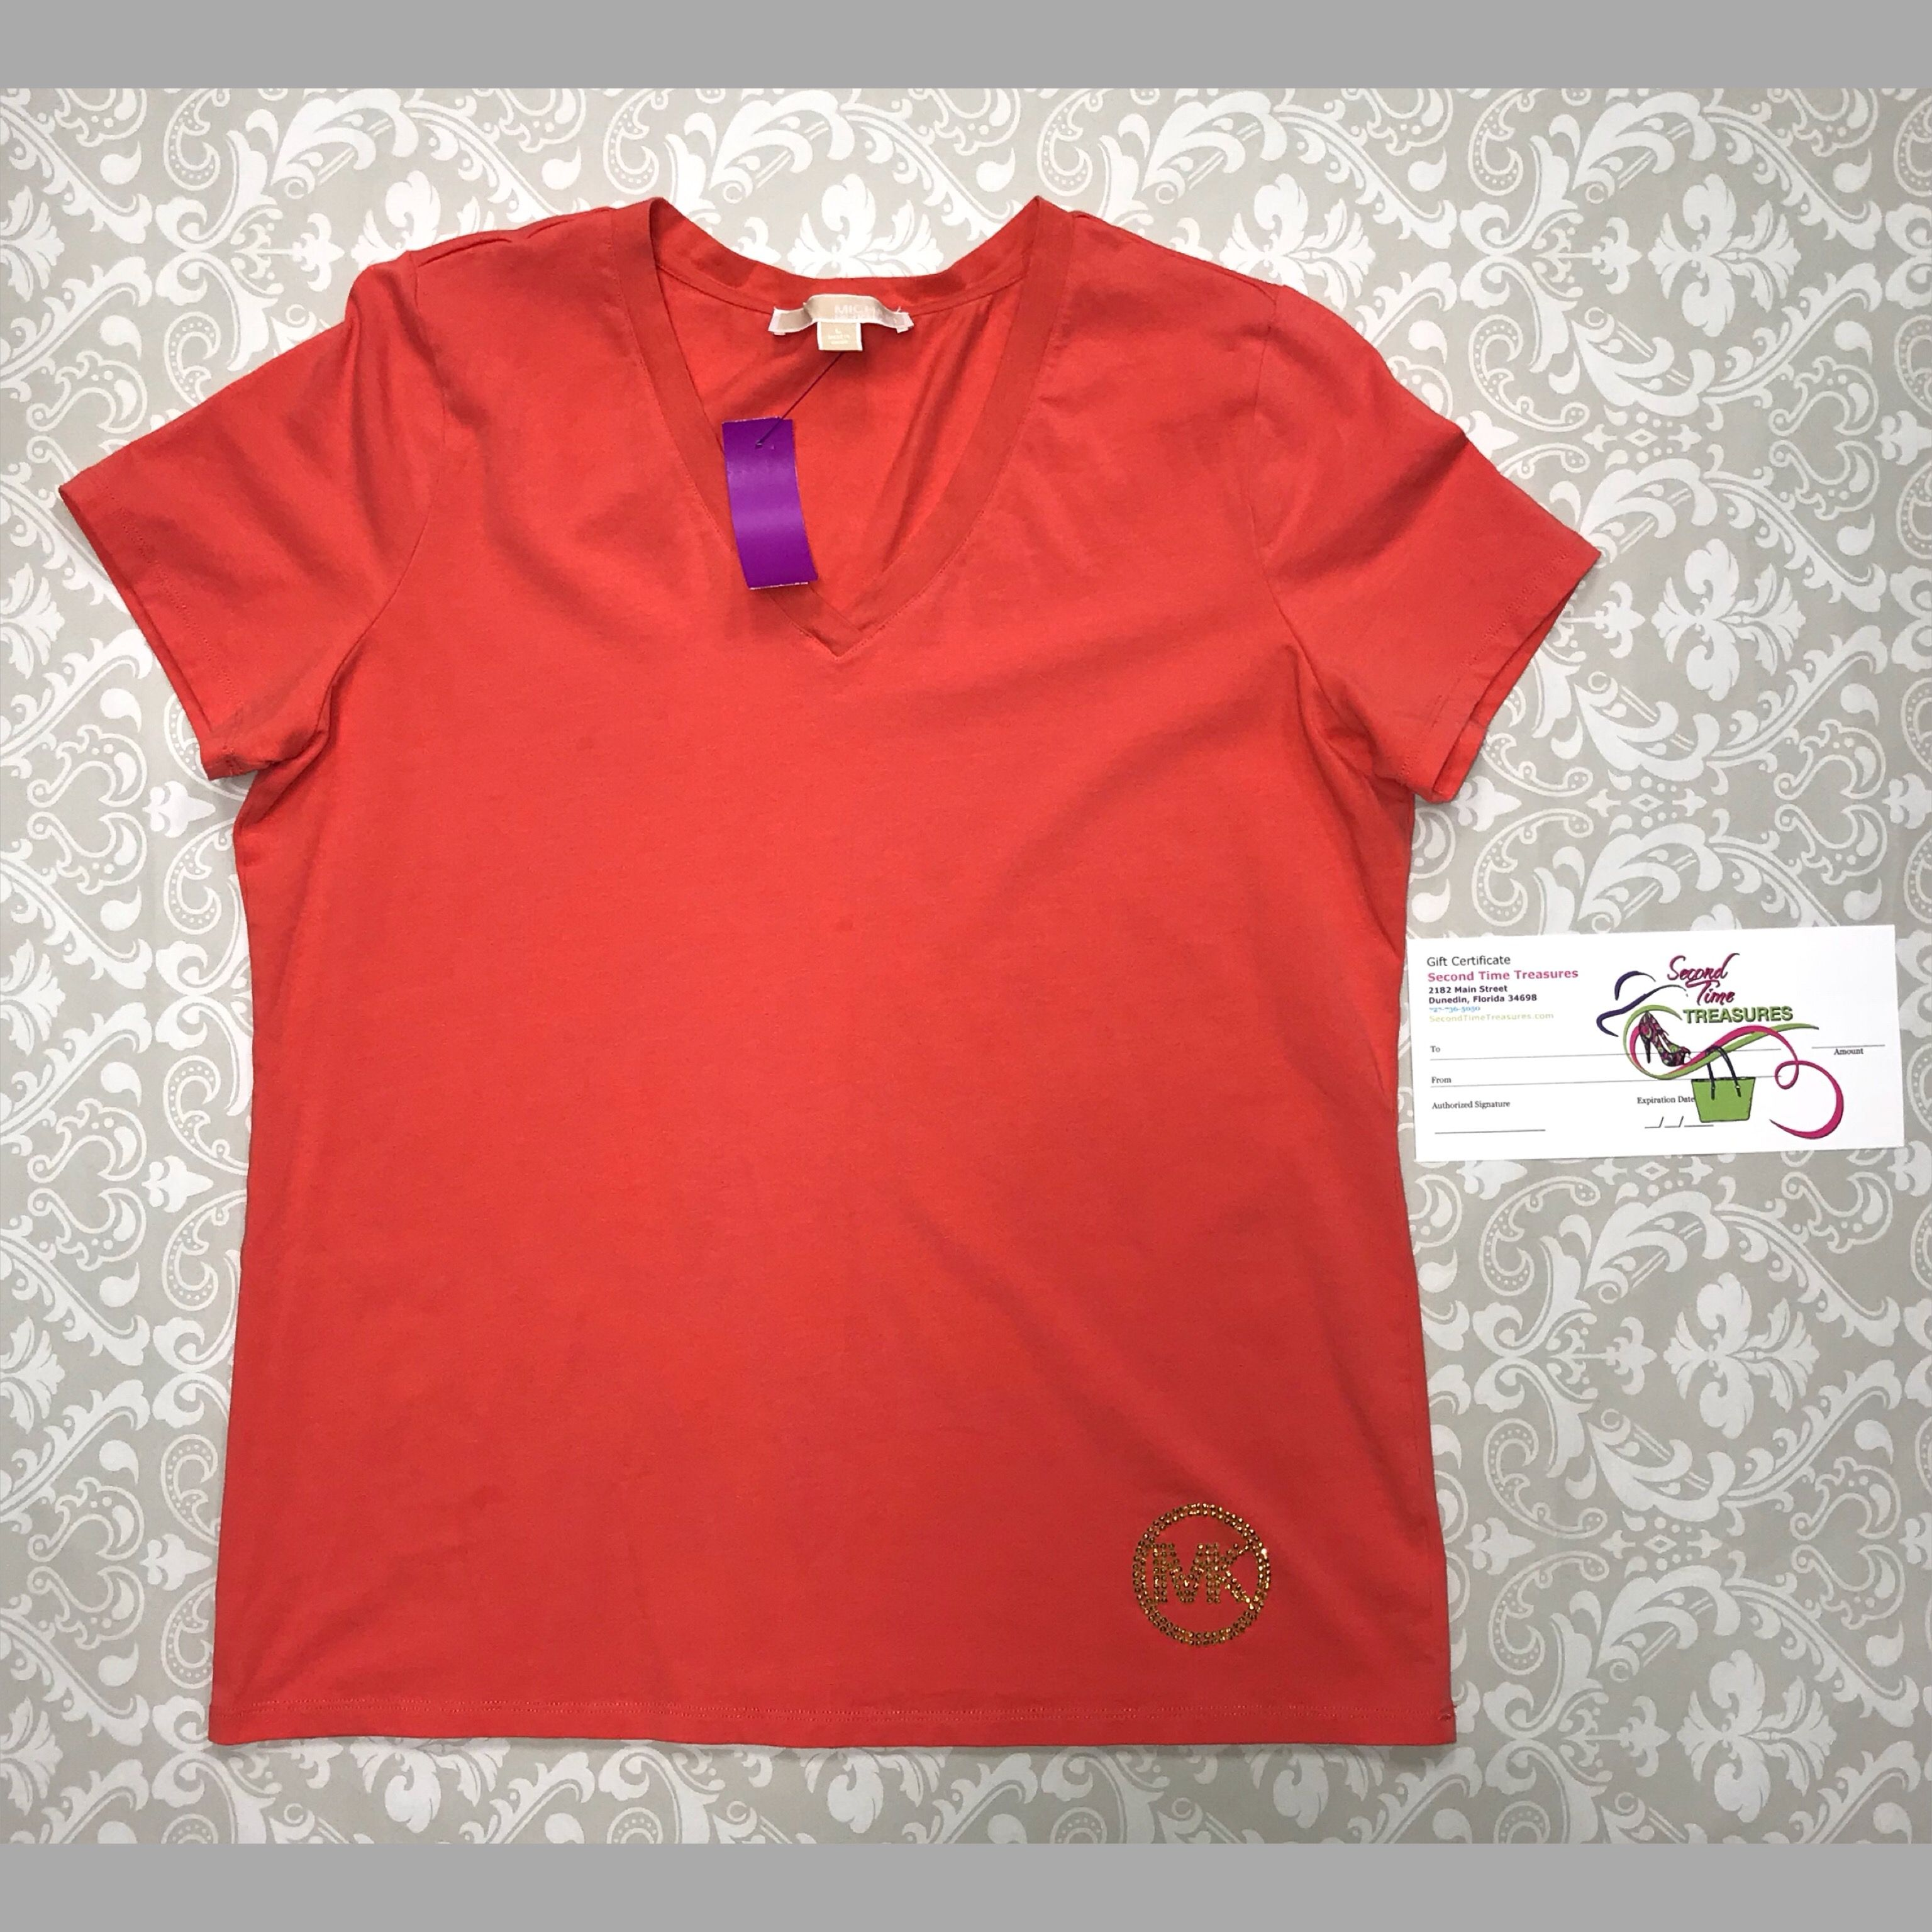 Michael kors short sleeve top with gold rhinestone logo in size